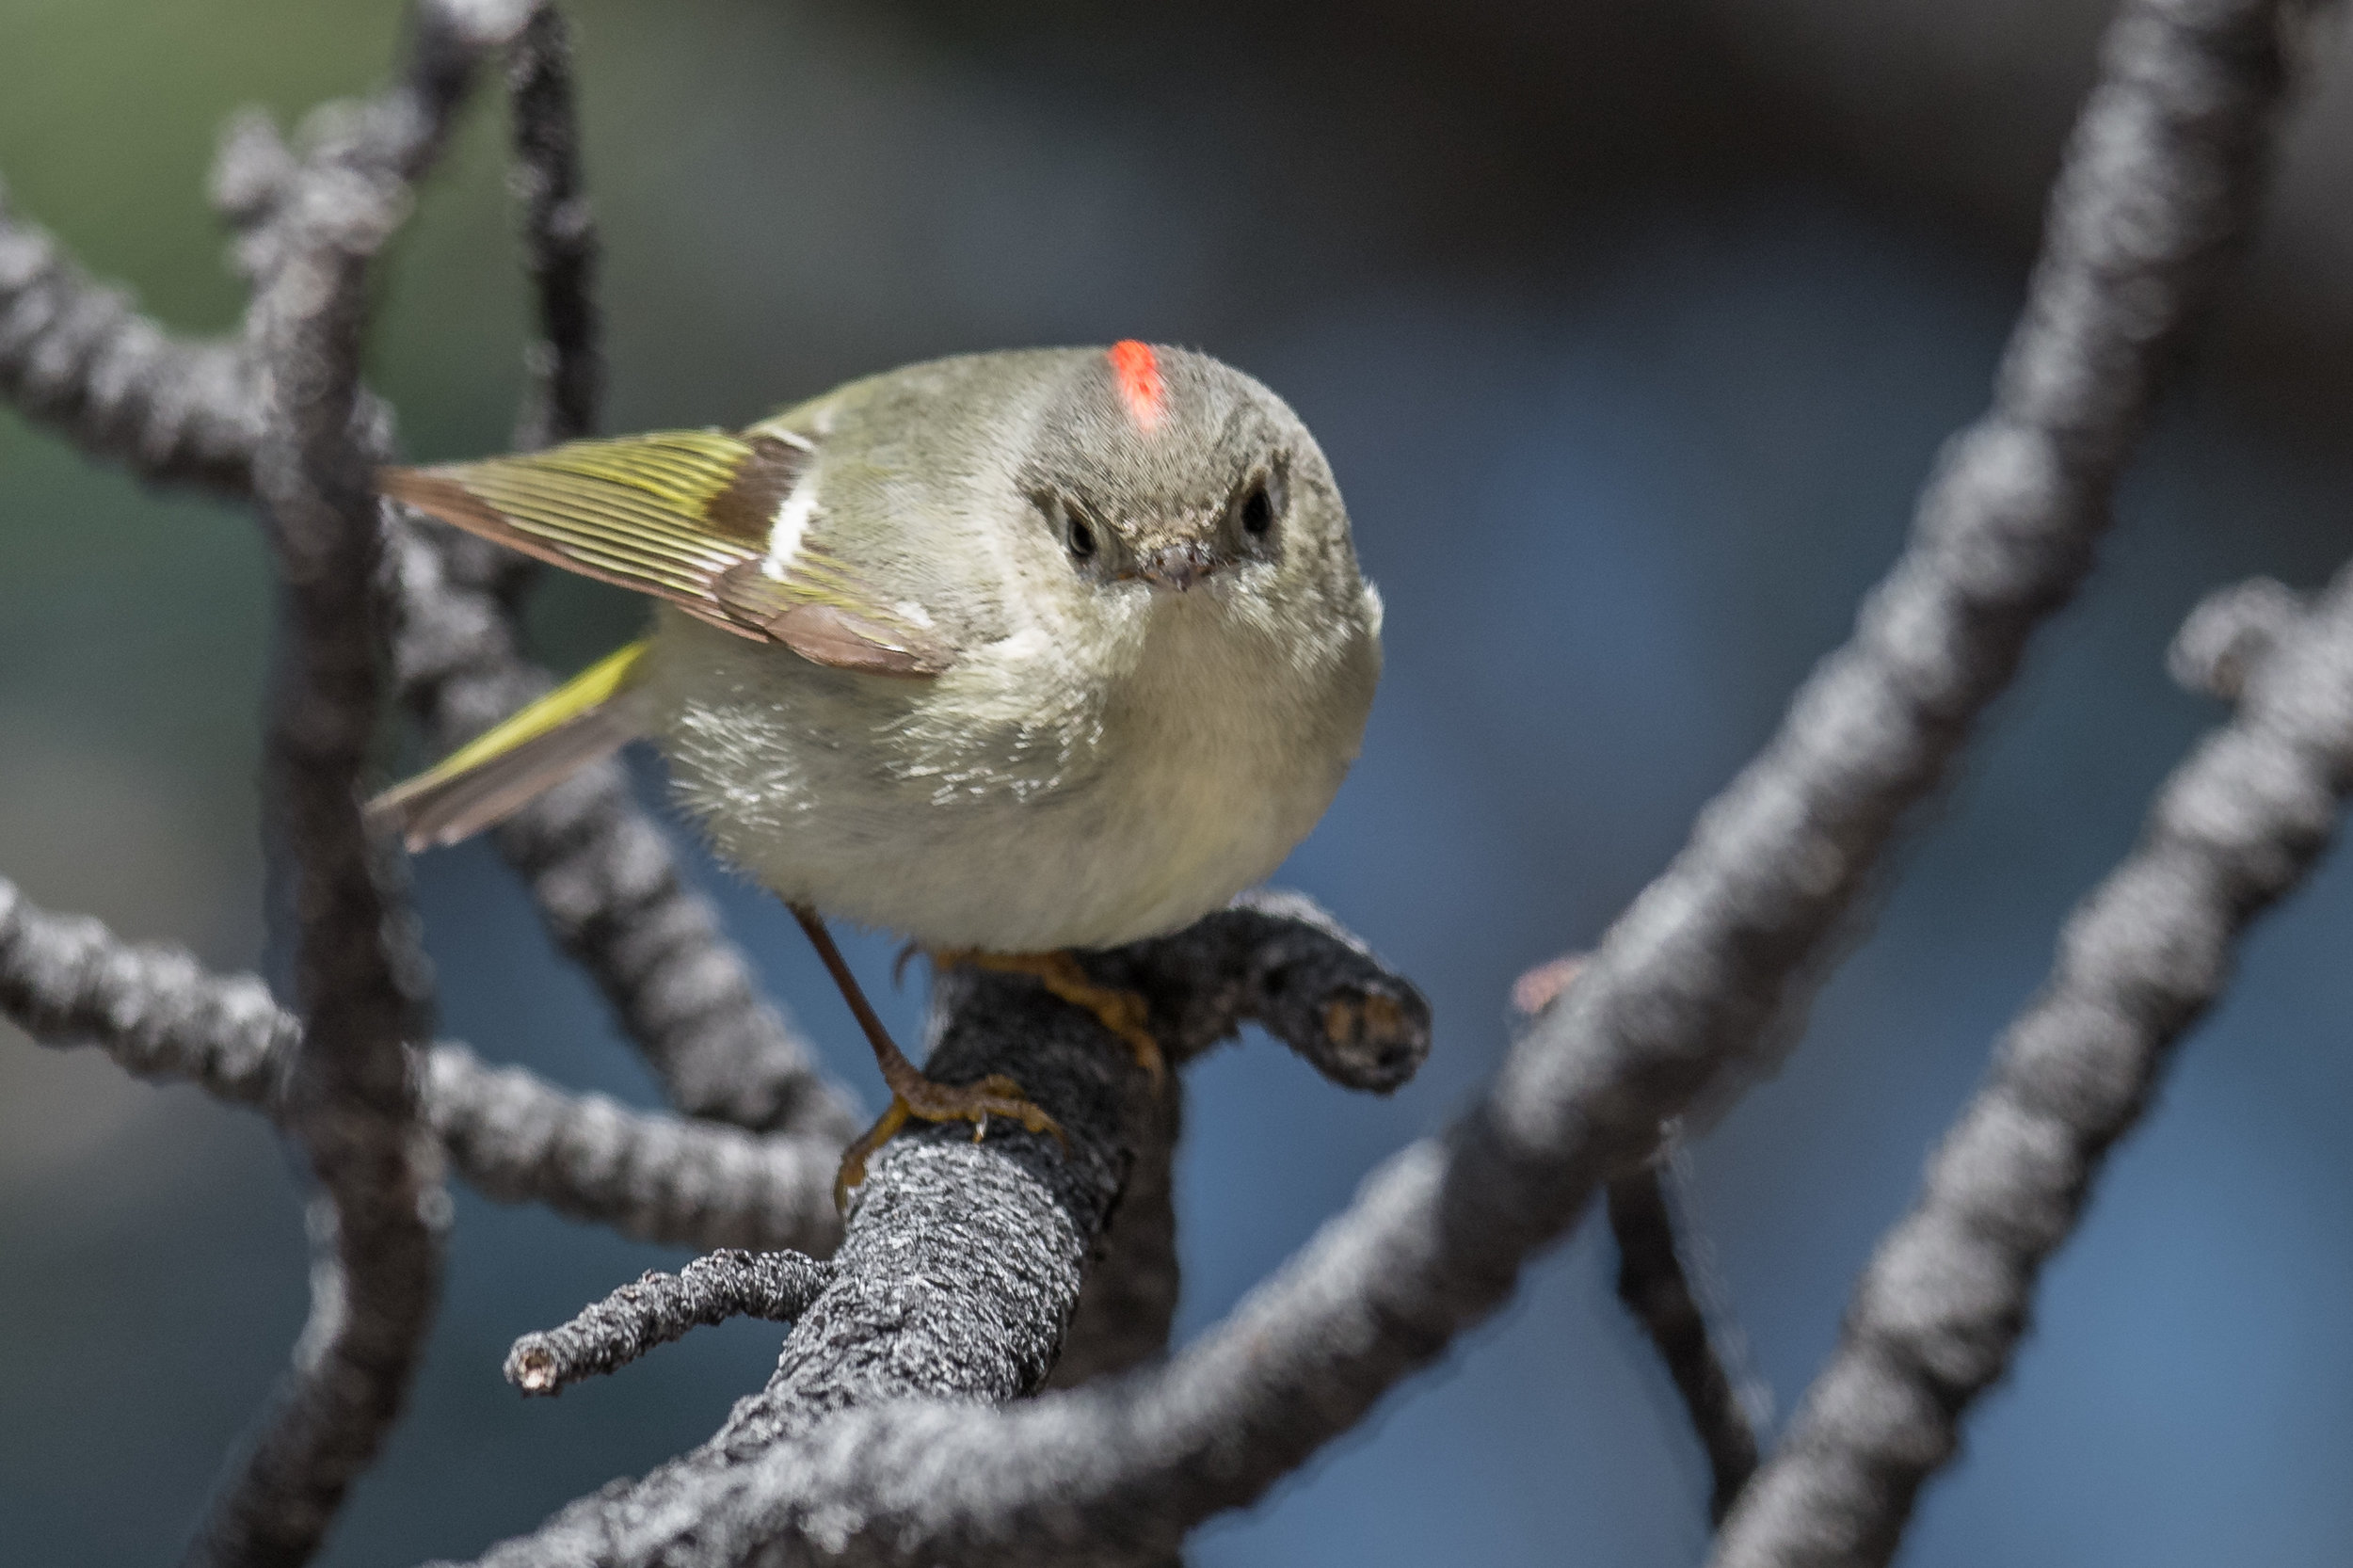 Featured Photo: Ruby-crowned Kinglet (Regulus calendula), WAS (NV)  EQ: D850, 500mm f/4 Taken: 3-29-2019 at 9:34  Settings: 500mm (35mm eqv), 1/1250s, f/4, ISO500, 1/3EV Conditions: sunny